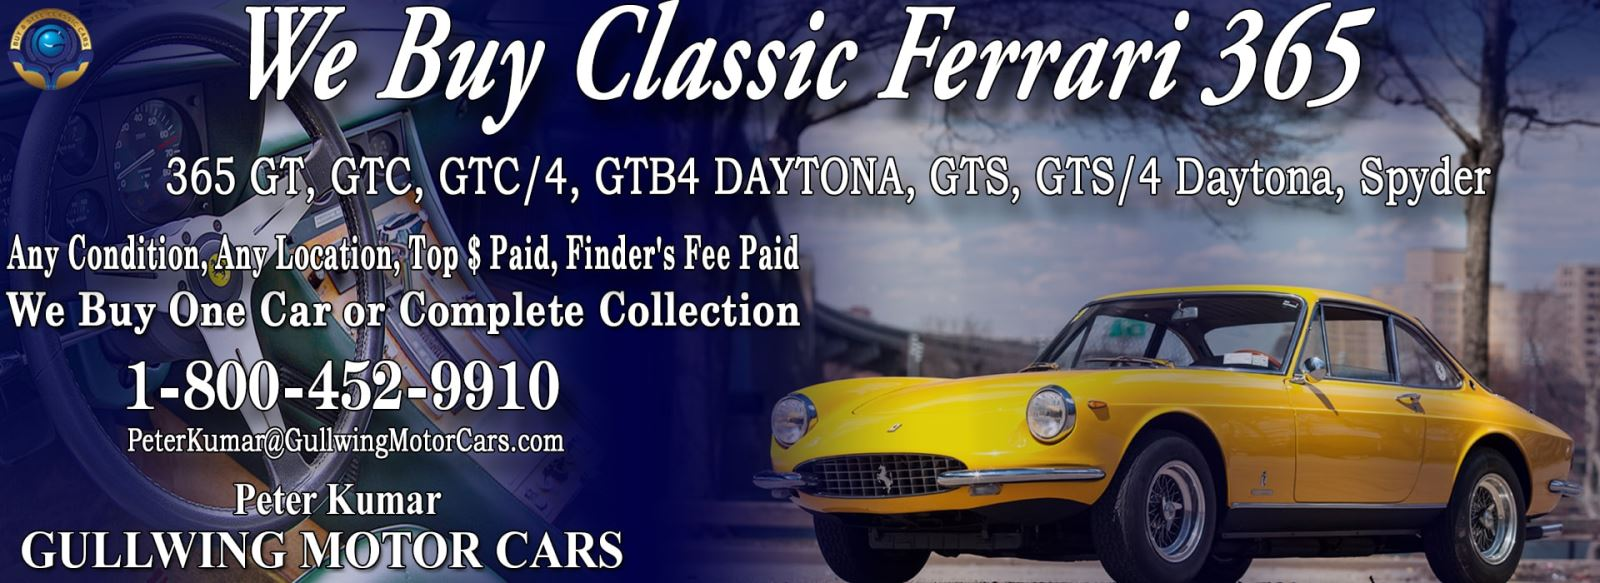 Classic Ferrari 365 GTS4 Daytona Spyder for sale, we buy vintage Ferrari 365 GTS4 Spyder. Call Peter Kumar. Gullwing Motor